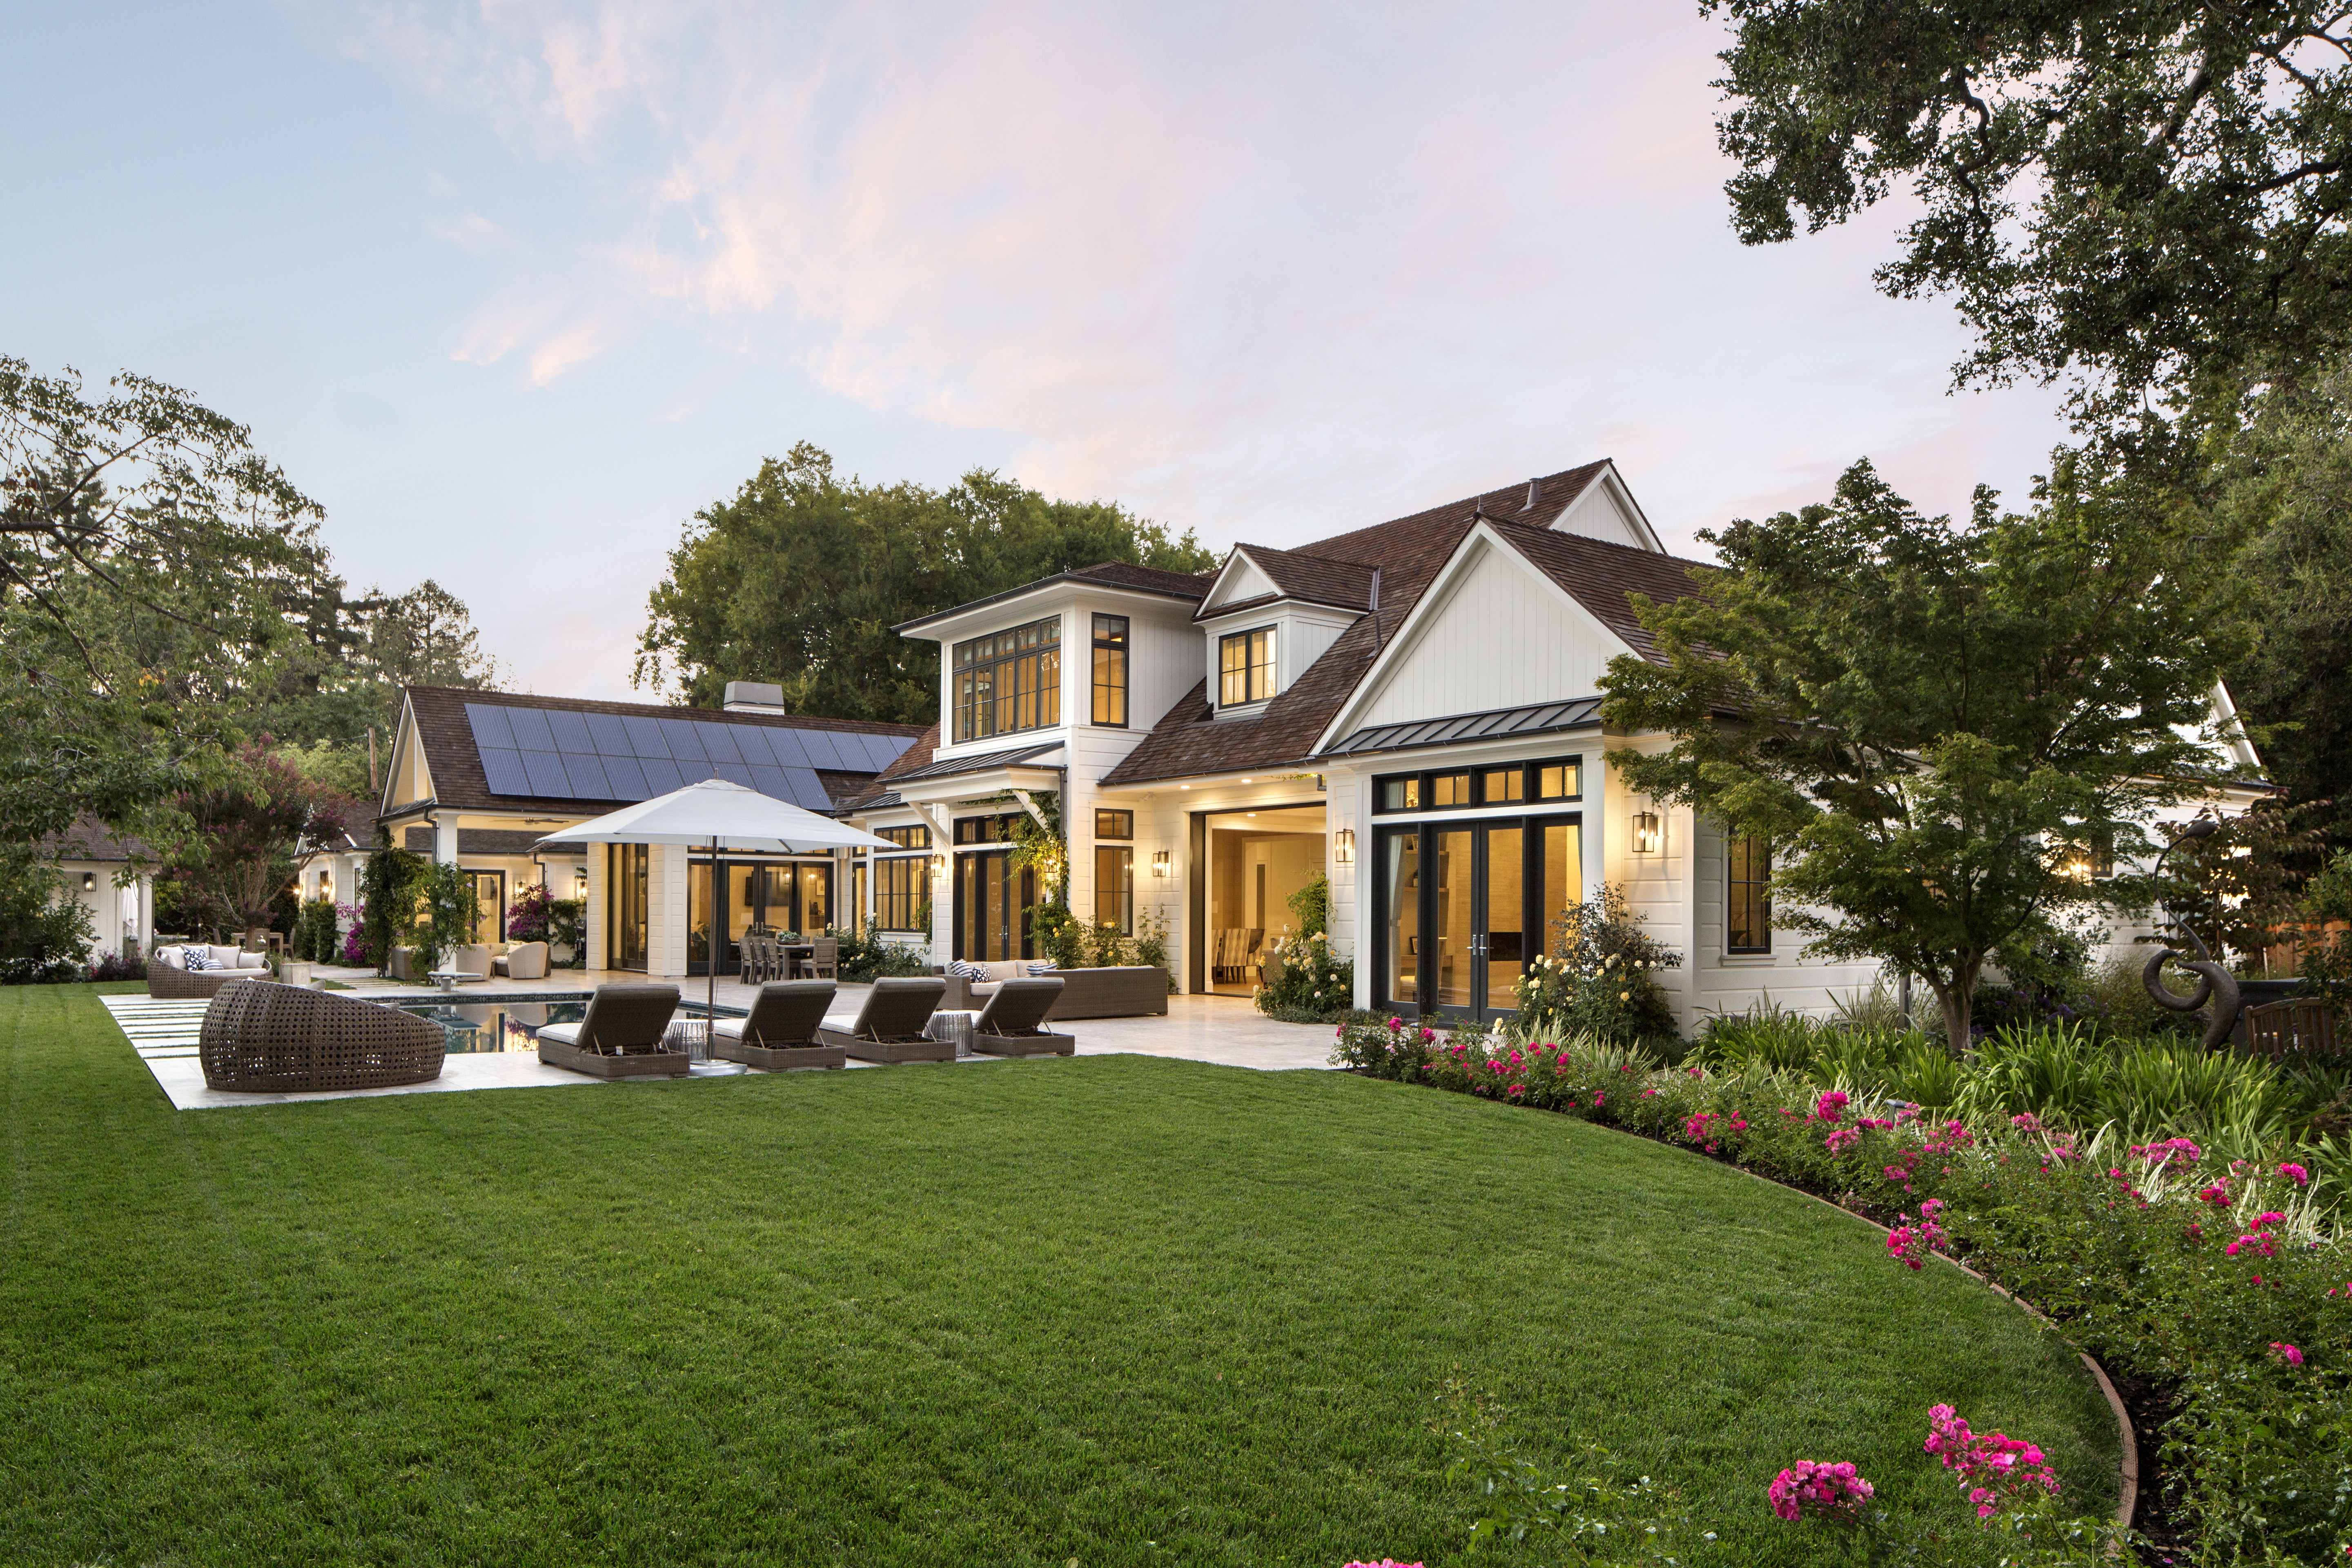 """This Silicon Valley home has beautiful landscaping and various outdoor living areas ideal for the entire family. """"The park-like setting feels like it could be one hundred miles from where computers were invented,"""" says Sullivan of the home's backyard."""